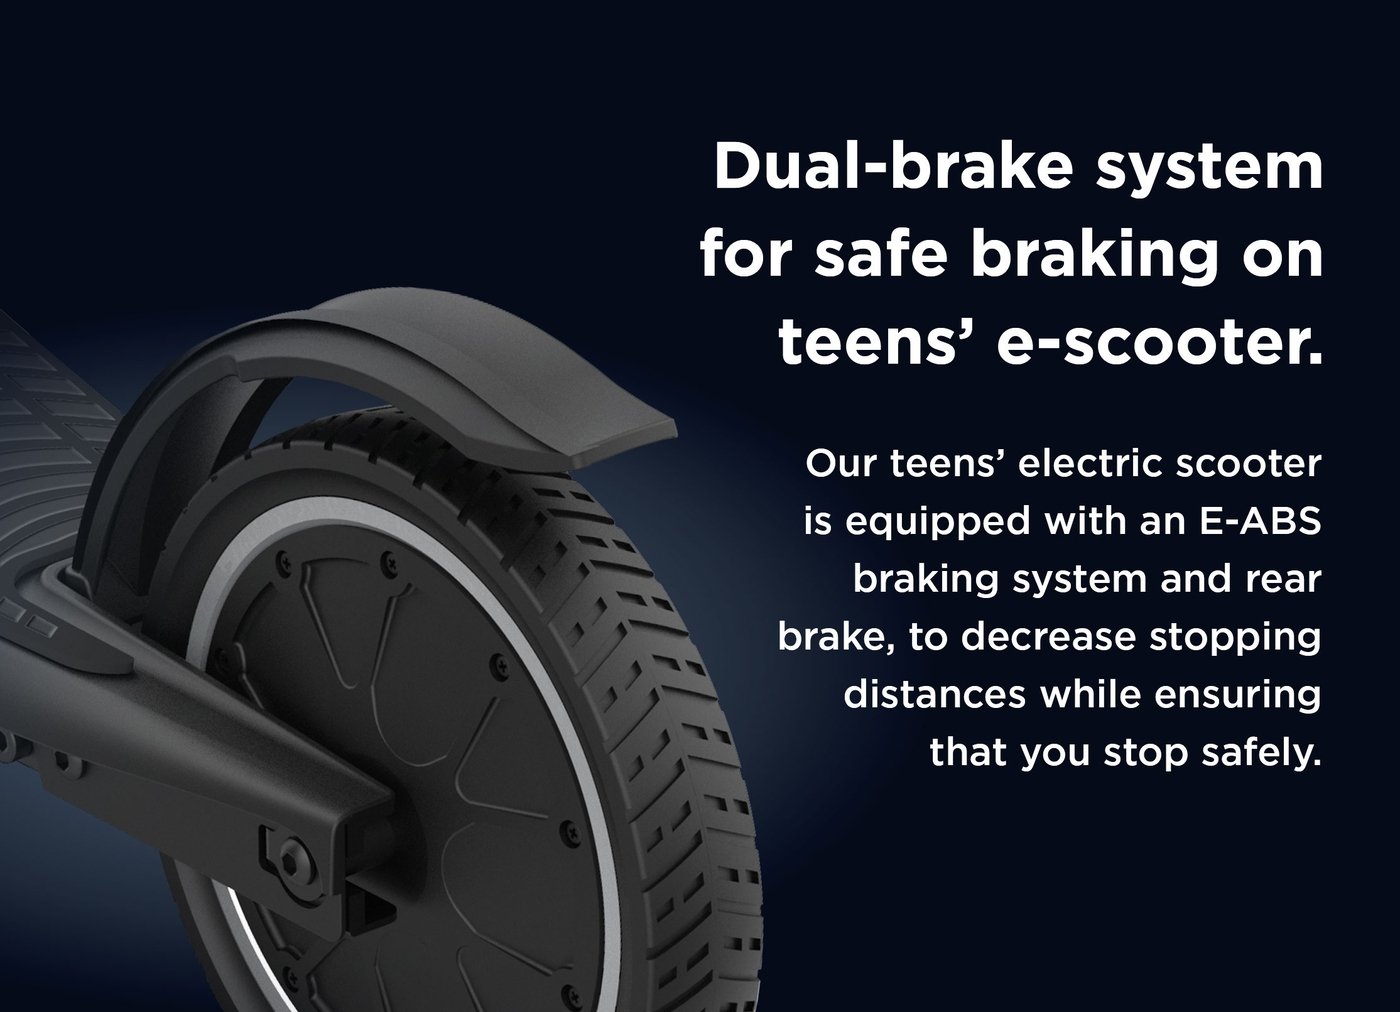 Dual-brake system for safe braking on teens' e-scooter.